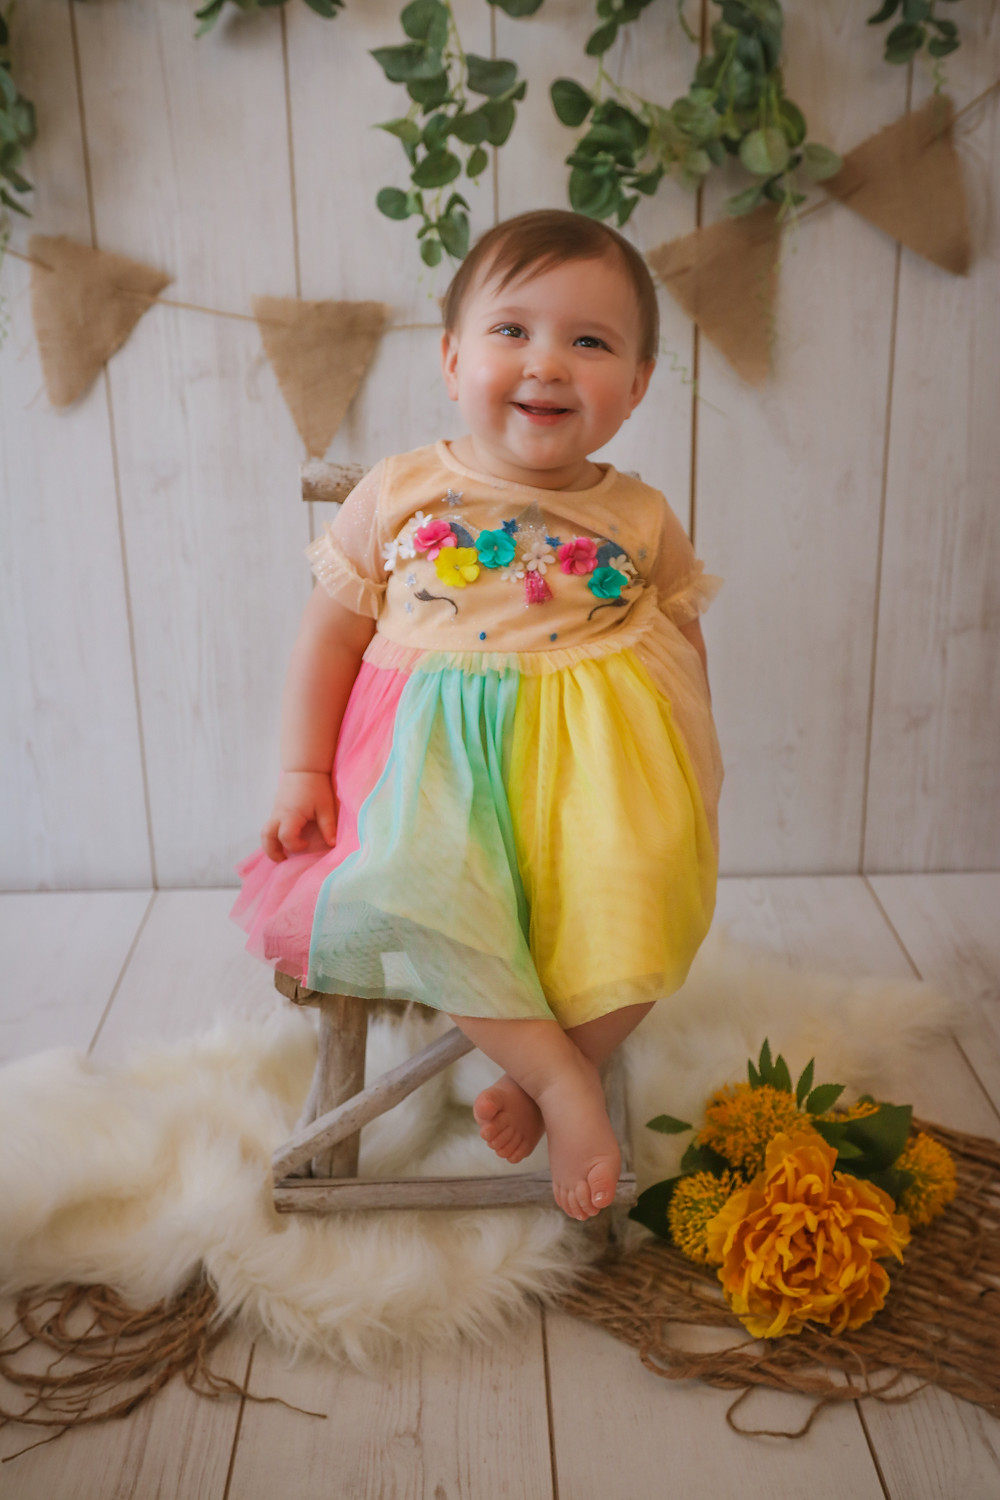 little girl sitting on chair smiling wearing a rainbow dress